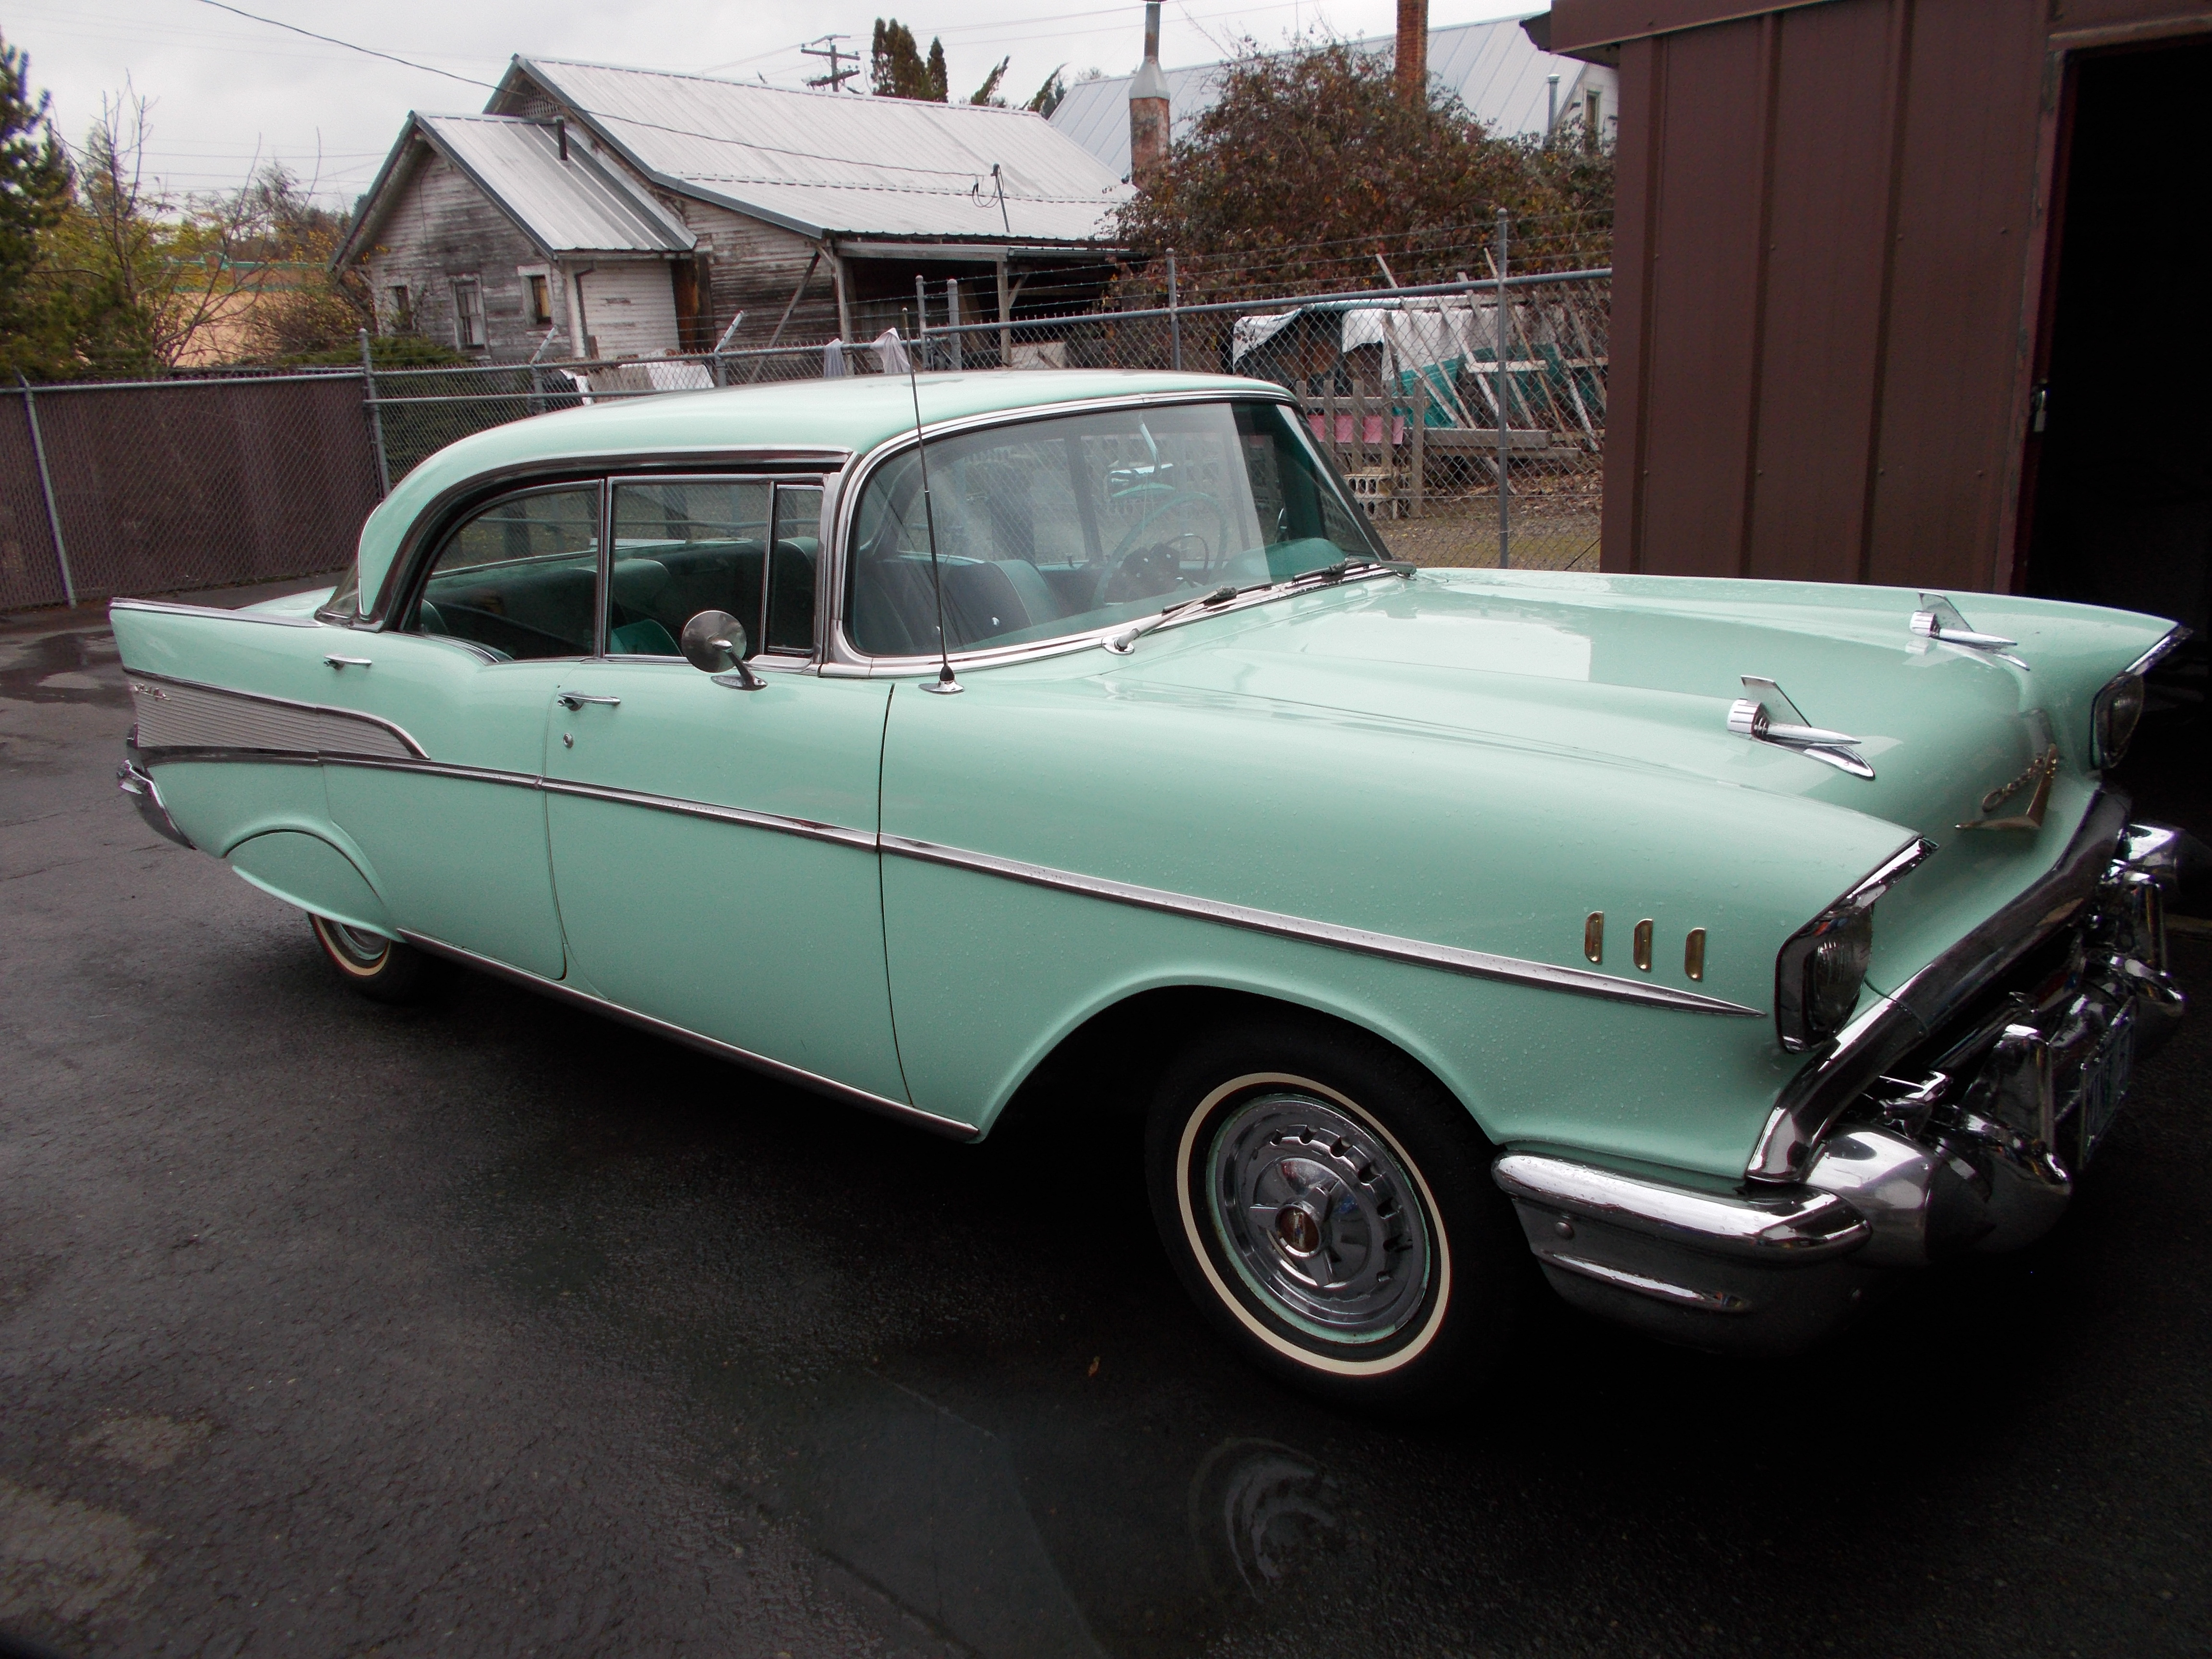 Hamilton Auto Sales 1957 Chevy Bel Air Convertible Colors Belair 4dr Hard Top Original Car With Just A Few Changes 283 V 8 Power Glide Transmission Same Owner Past 20 Years Has Been Painted